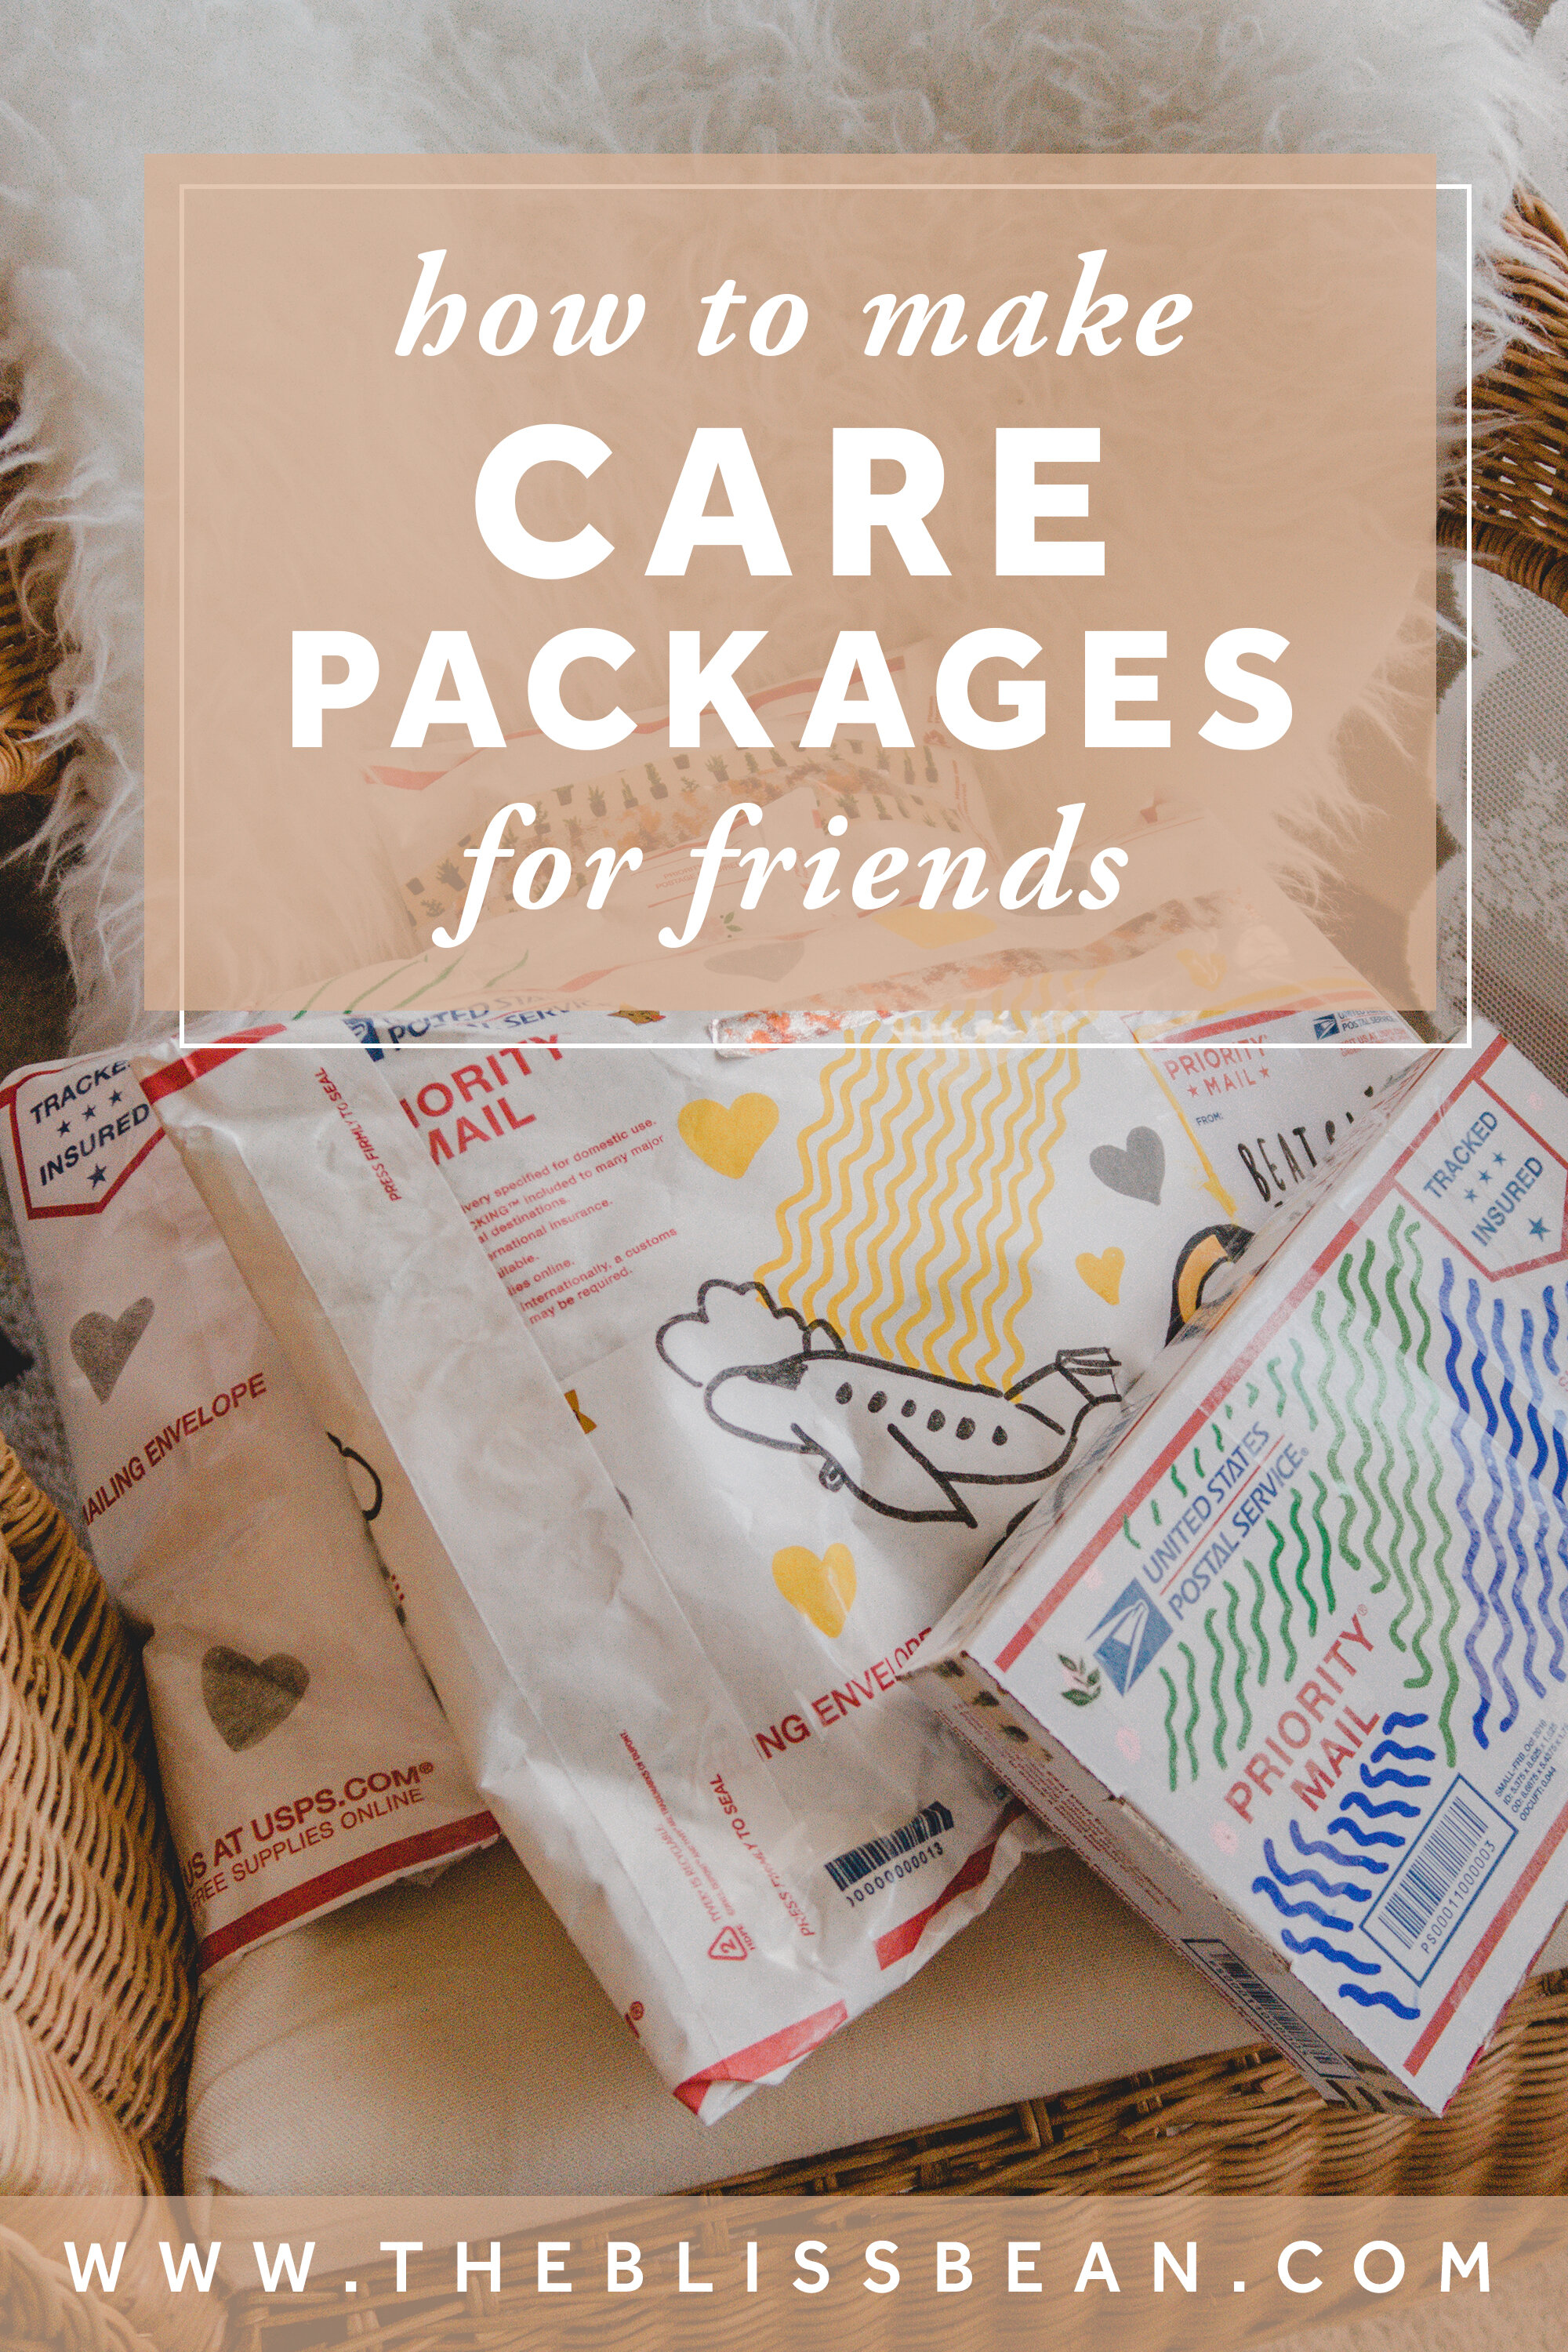 0 - cover image - care packages.jpg